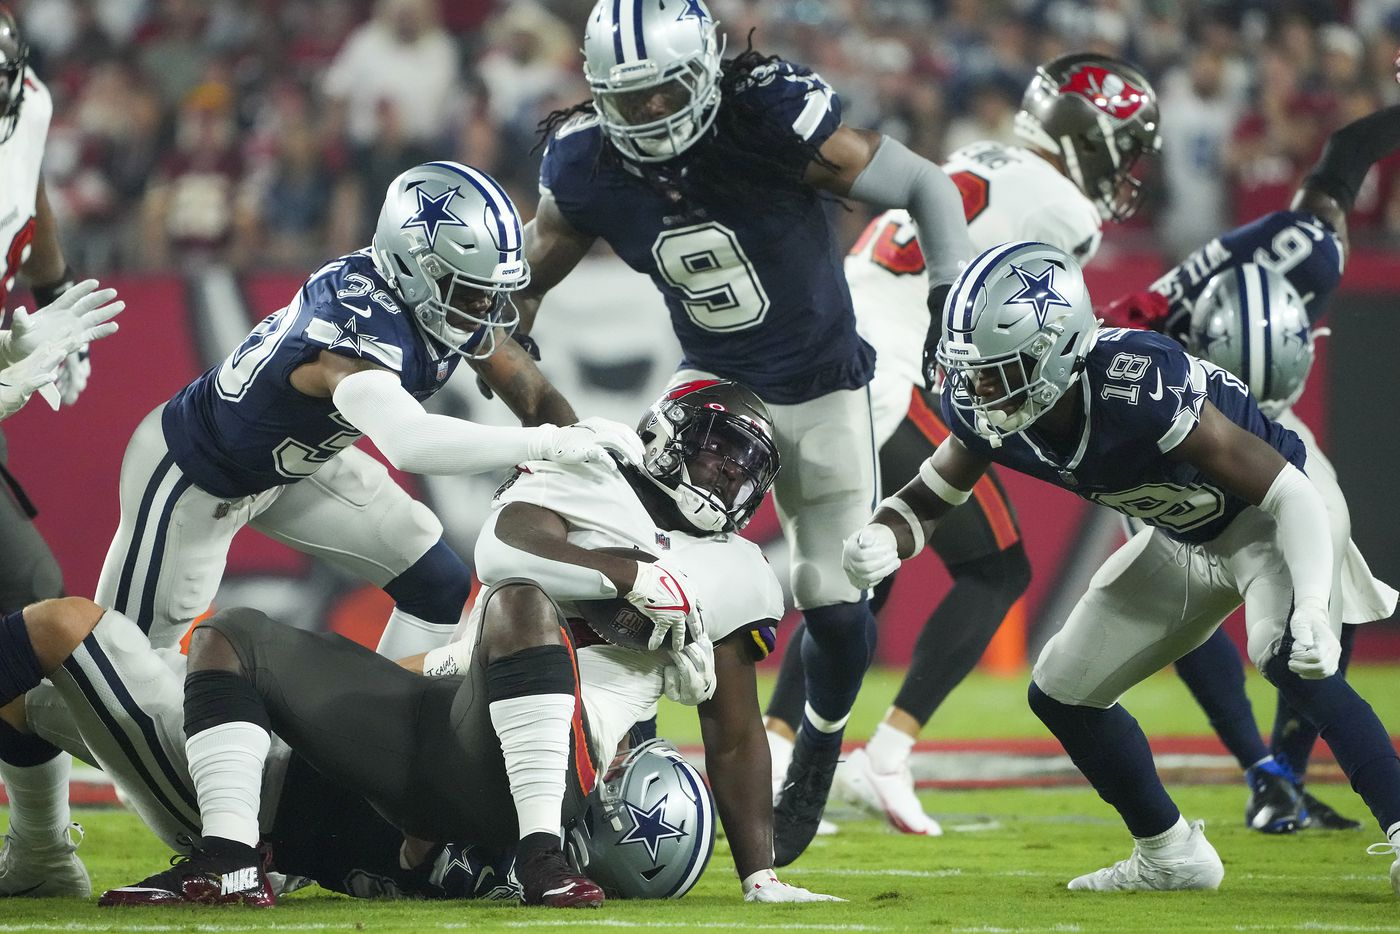 Tampa Bay Buccaneers running back Leonard Fournette (7) is brought down by Dallas Cowboys linebacker Leighton Vander Esch (55) along with cornerback Anthony Brown (30), linebacker Jaylon Smith (9) and safety Damontae Kazee (18) during the first half of an NFL football game  at Raymond James Stadium on Thursday, Sept. 9, 2021, in Tampa, Fla. (Smiley N. Pool/The Dallas Morning News)